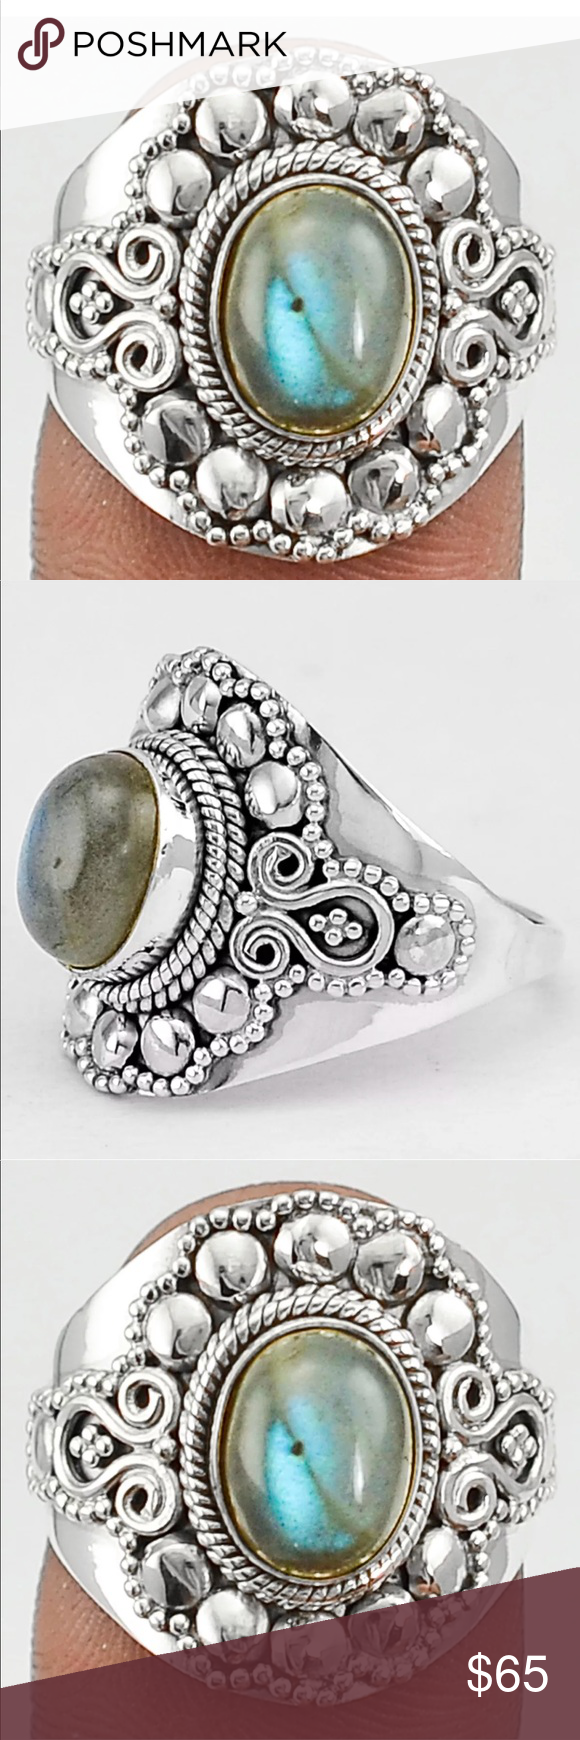 Artisan Sterling Silver Ring Boutique | Womens jewelry ...